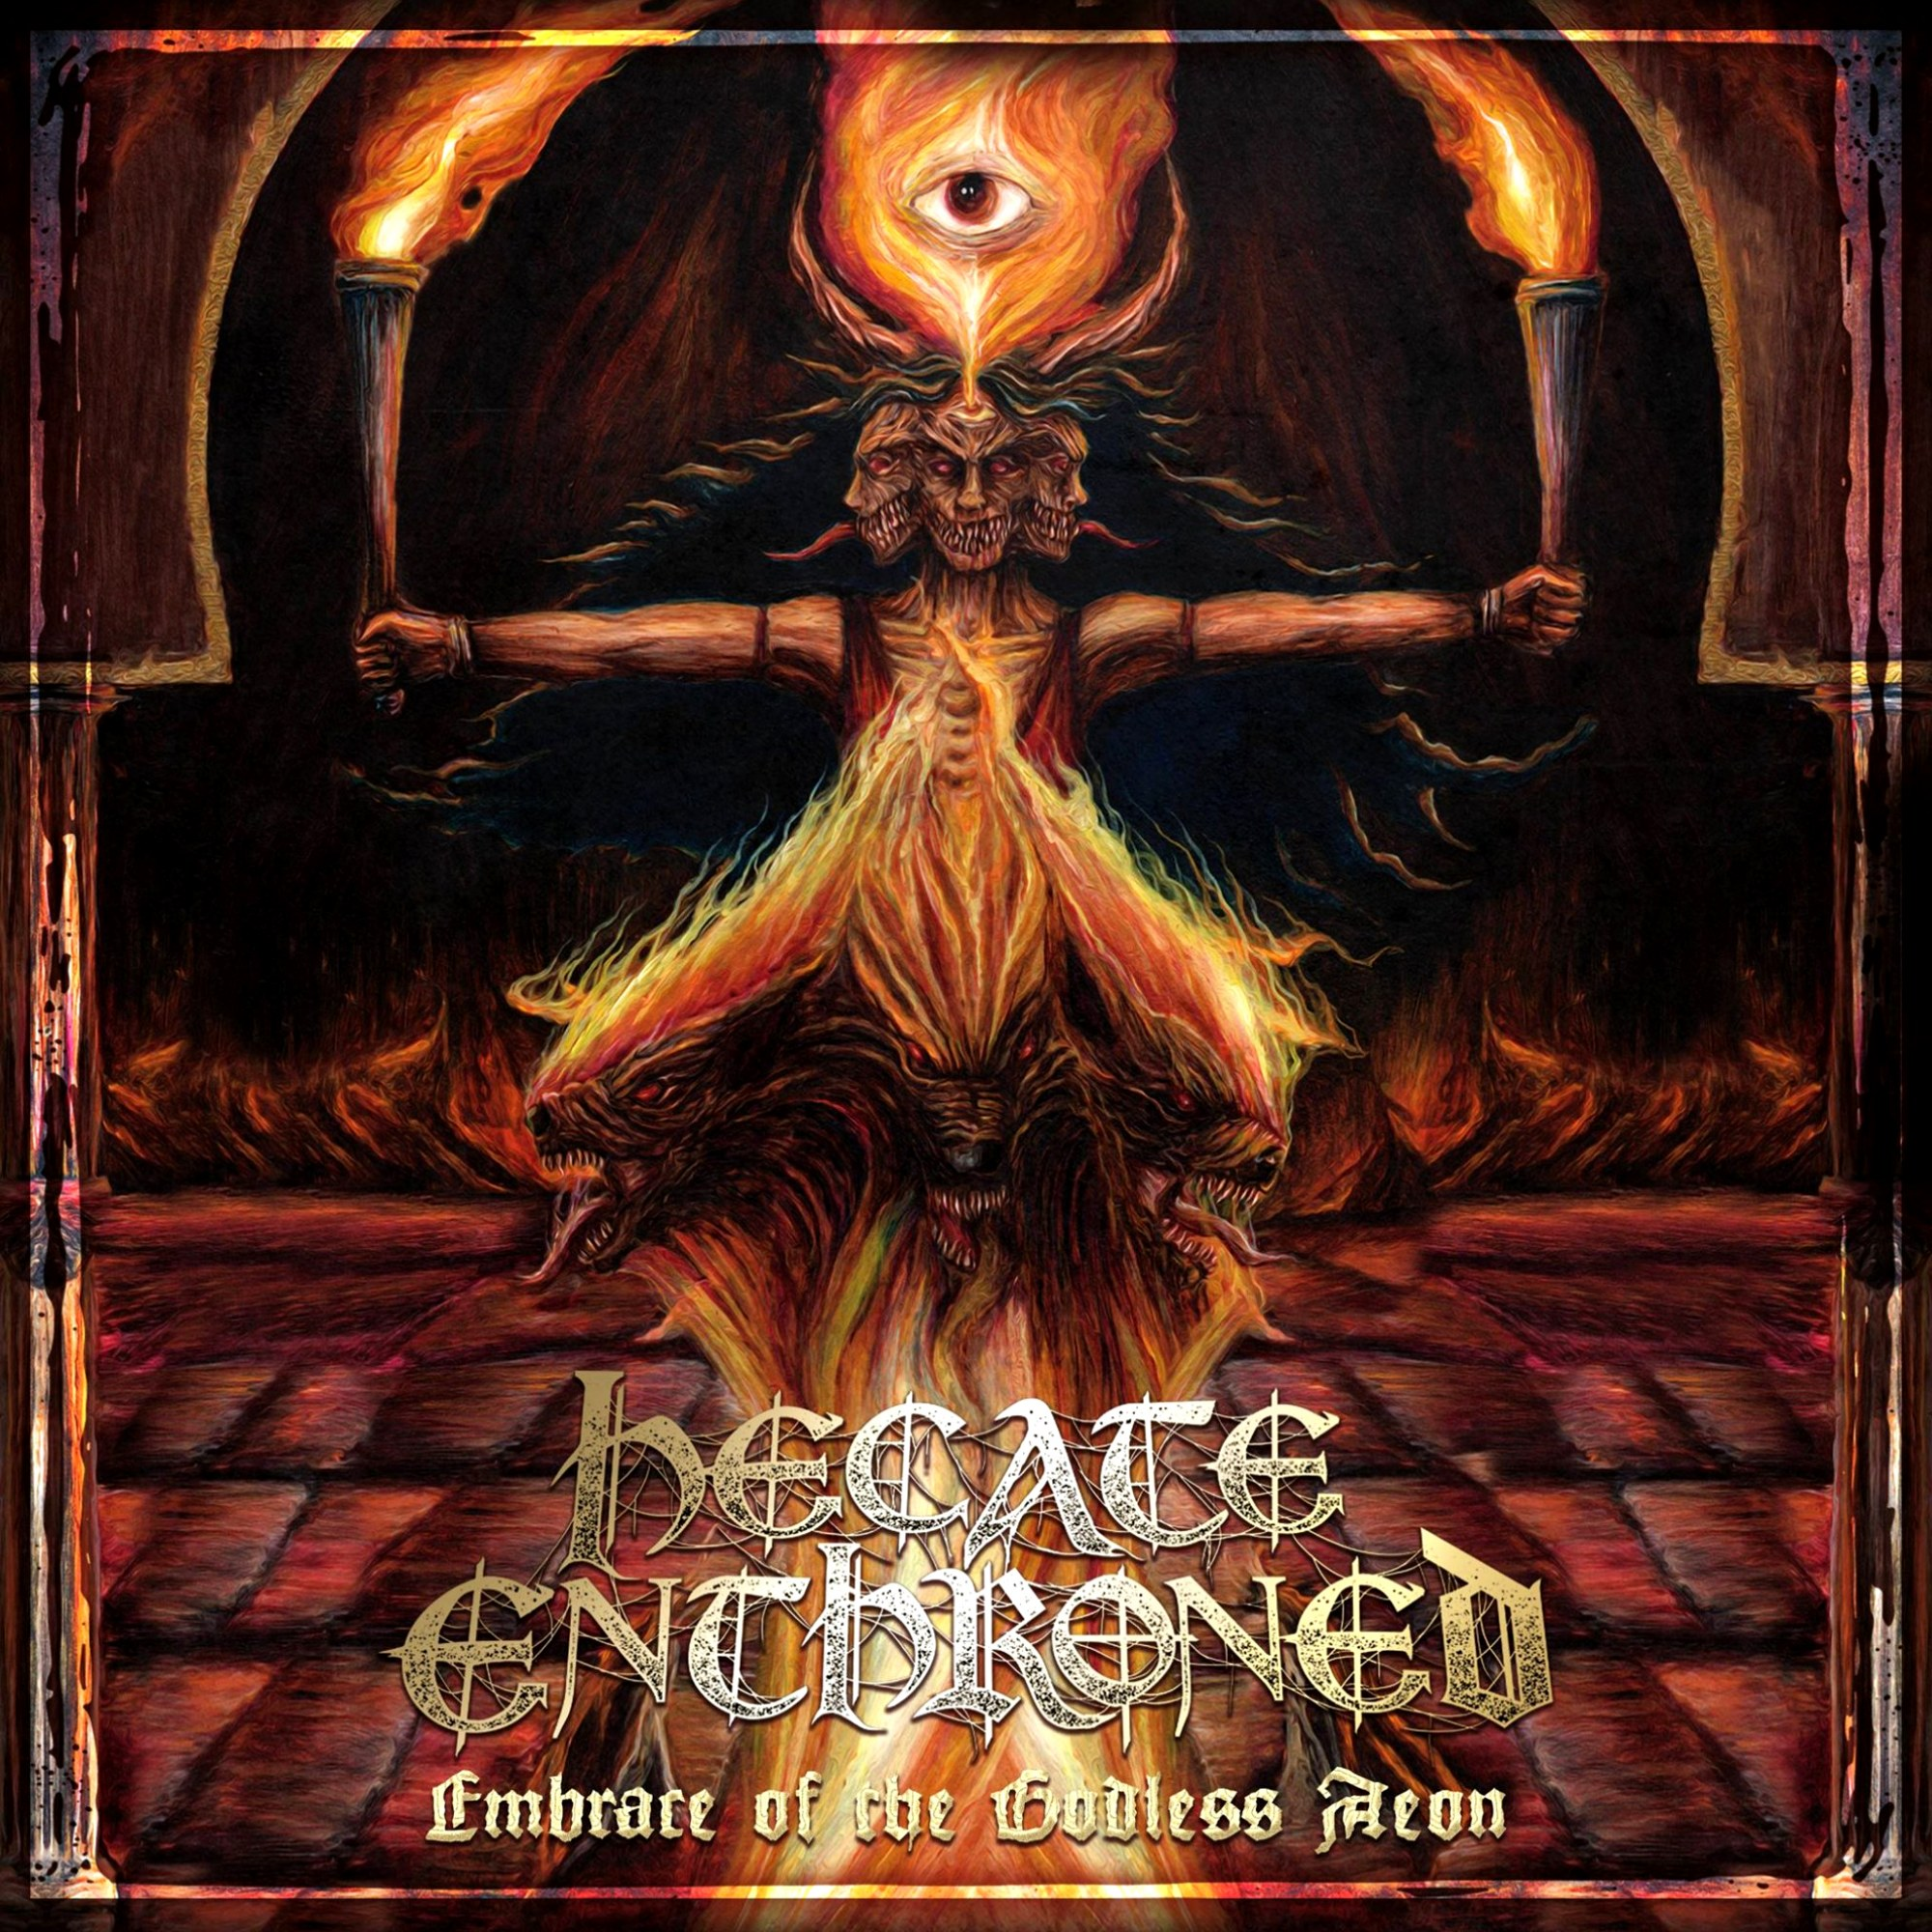 Review for Hecate Enthroned - Embrace of the Godless Aeon